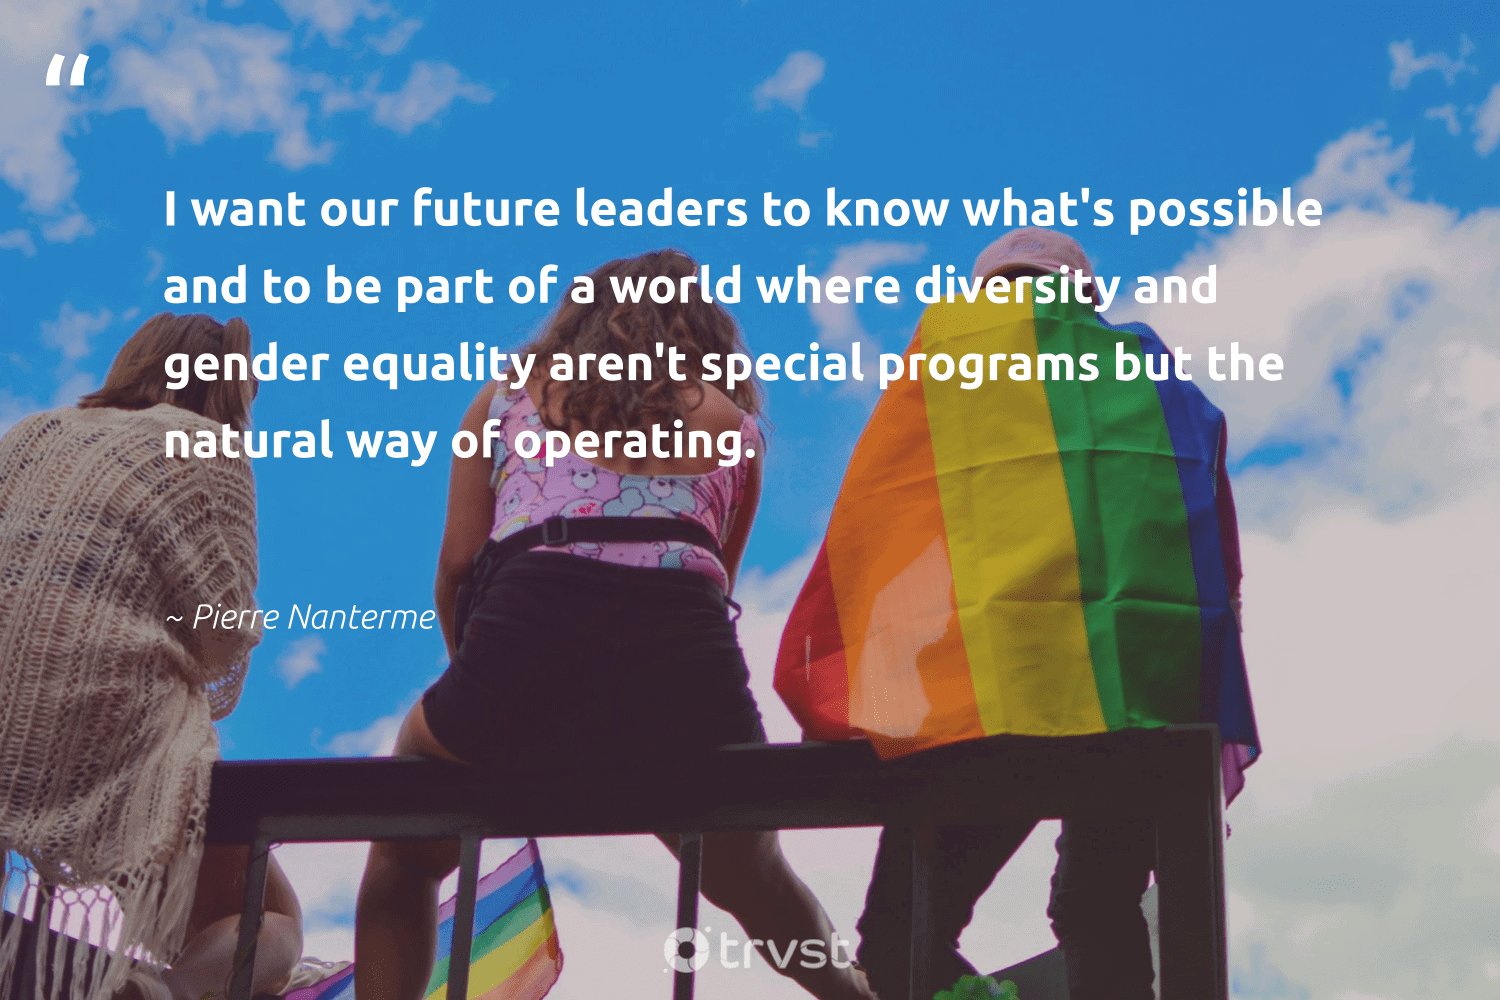 """""""I want our future leaders to know what's possible and to be part of a world where diversity and gender equality aren't special programs but the natural way of operating.""""  - Pierre Nanterme #trvst #quotes #diversity #natural #equality #genderequality #gender #discrimination #equalrights #bethechange #giveback #impact"""